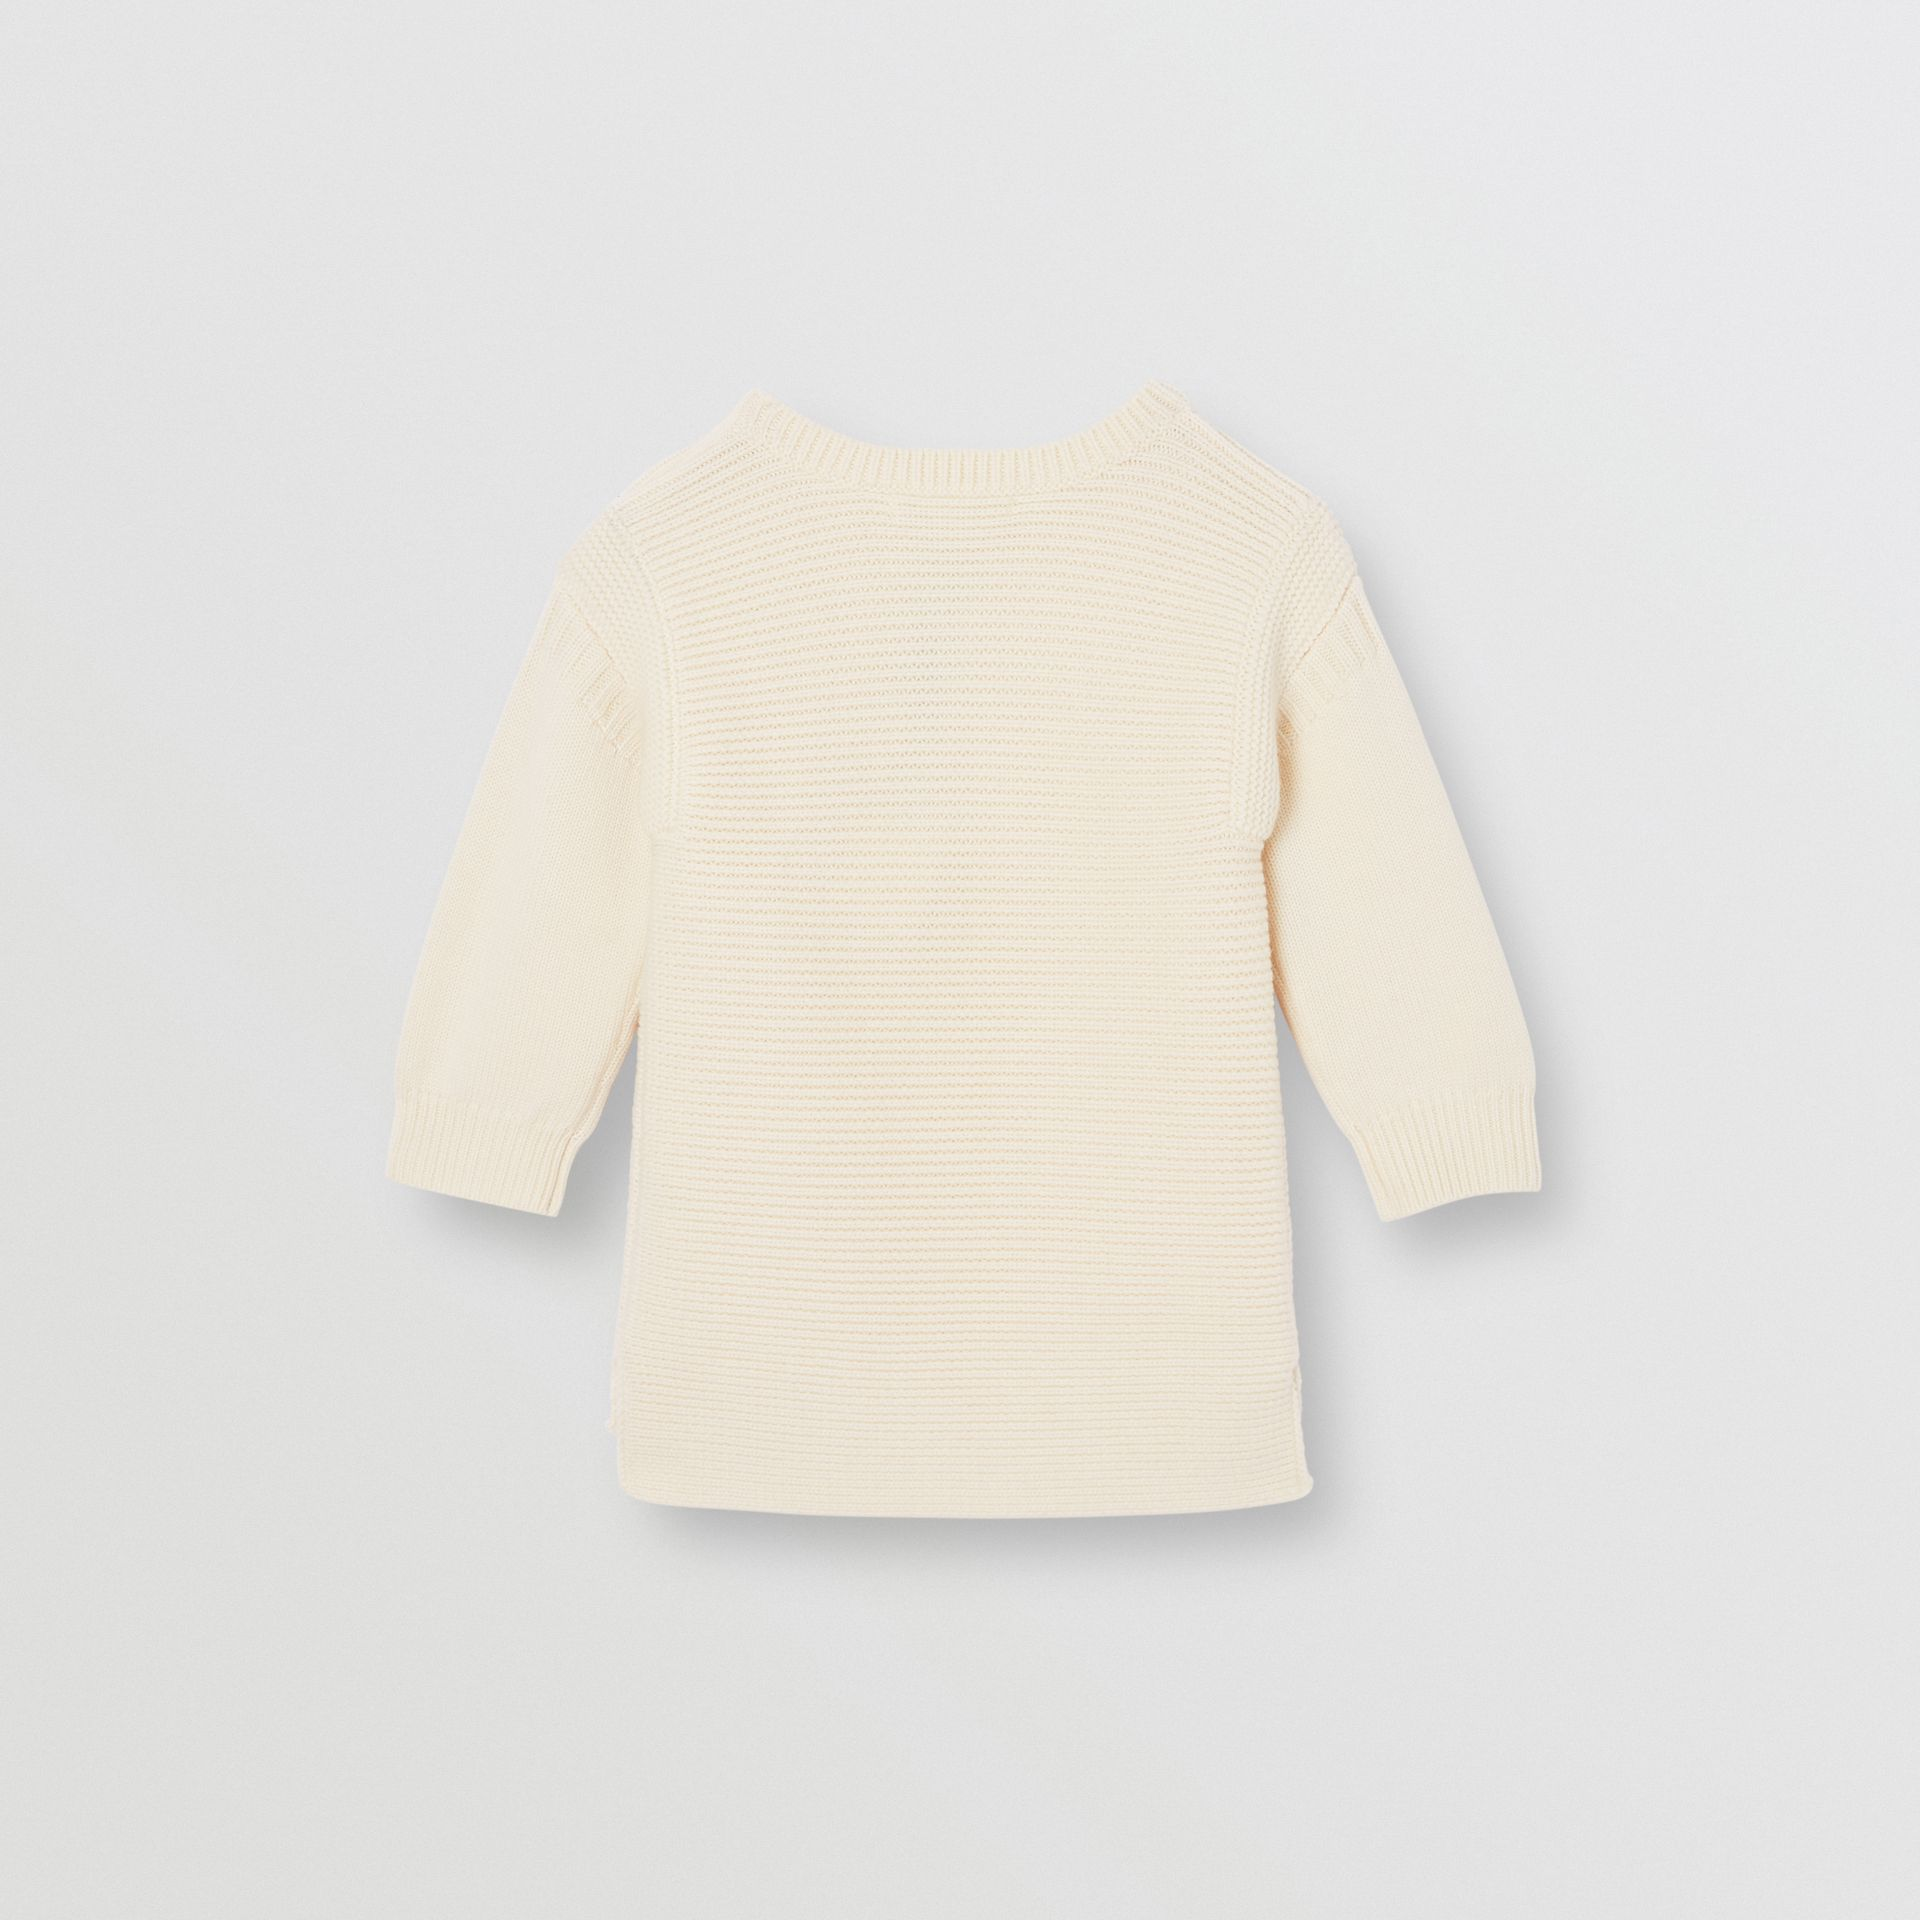 Logo Print Rib Knit Merino Wool Sweater Dress in Ivory - Children | Burberry United Kingdom - gallery image 3